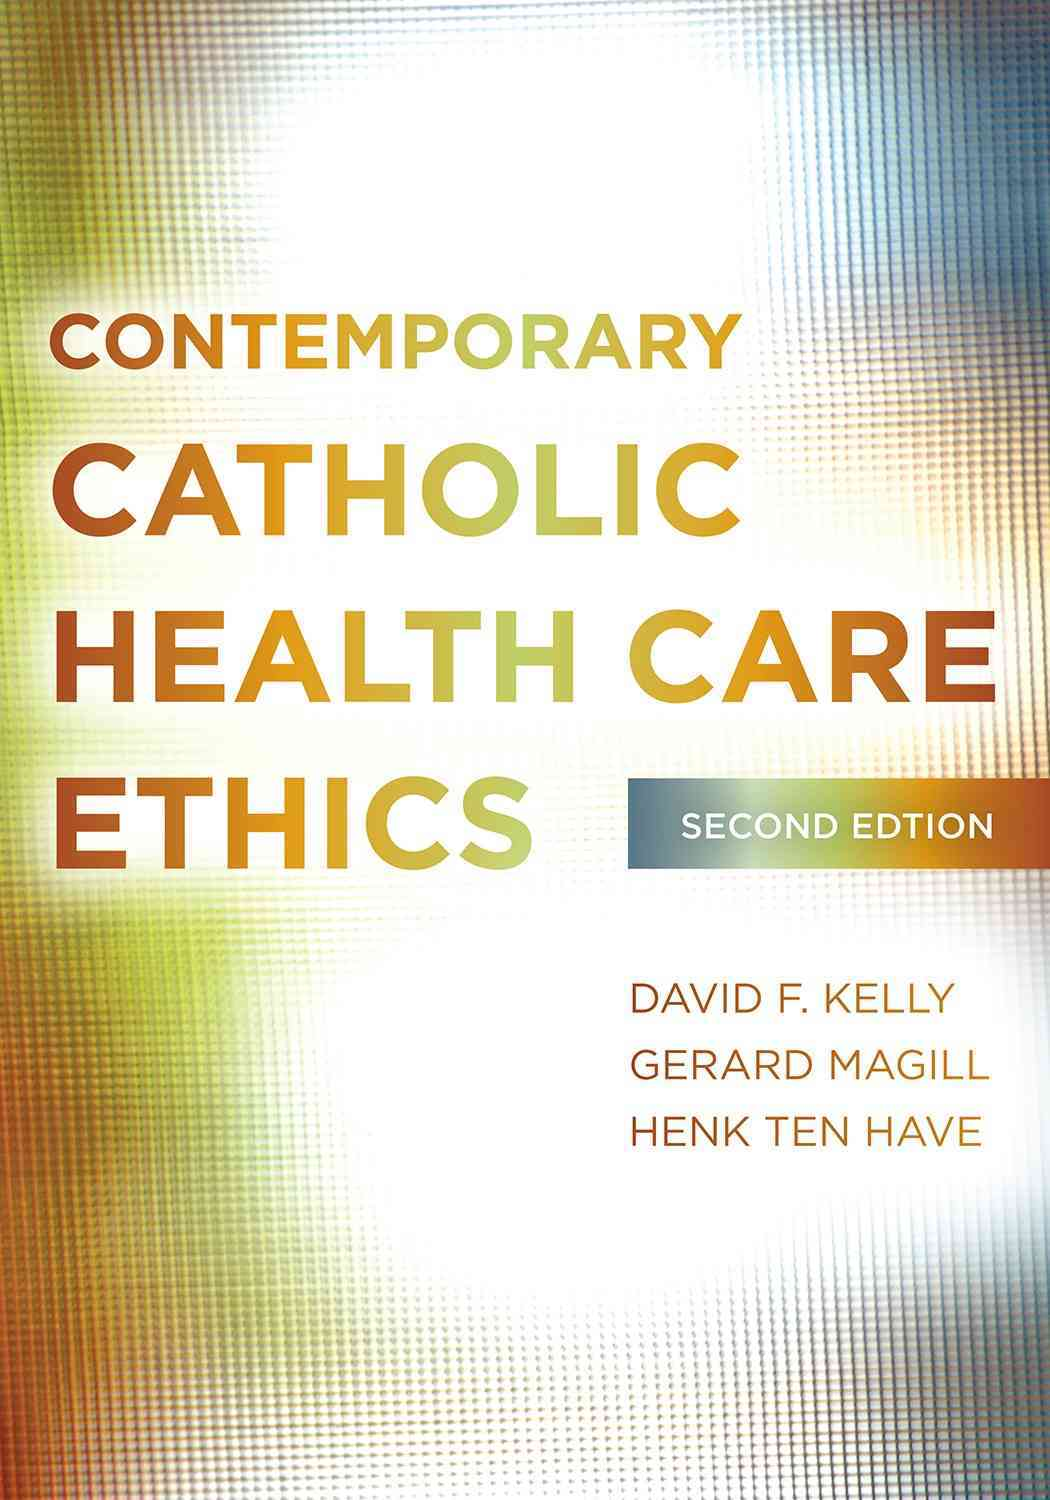 Contemporary Catholic Health Care Ethics By Kelly, David F./ Magill, Gerard/ Ten Have, Henk